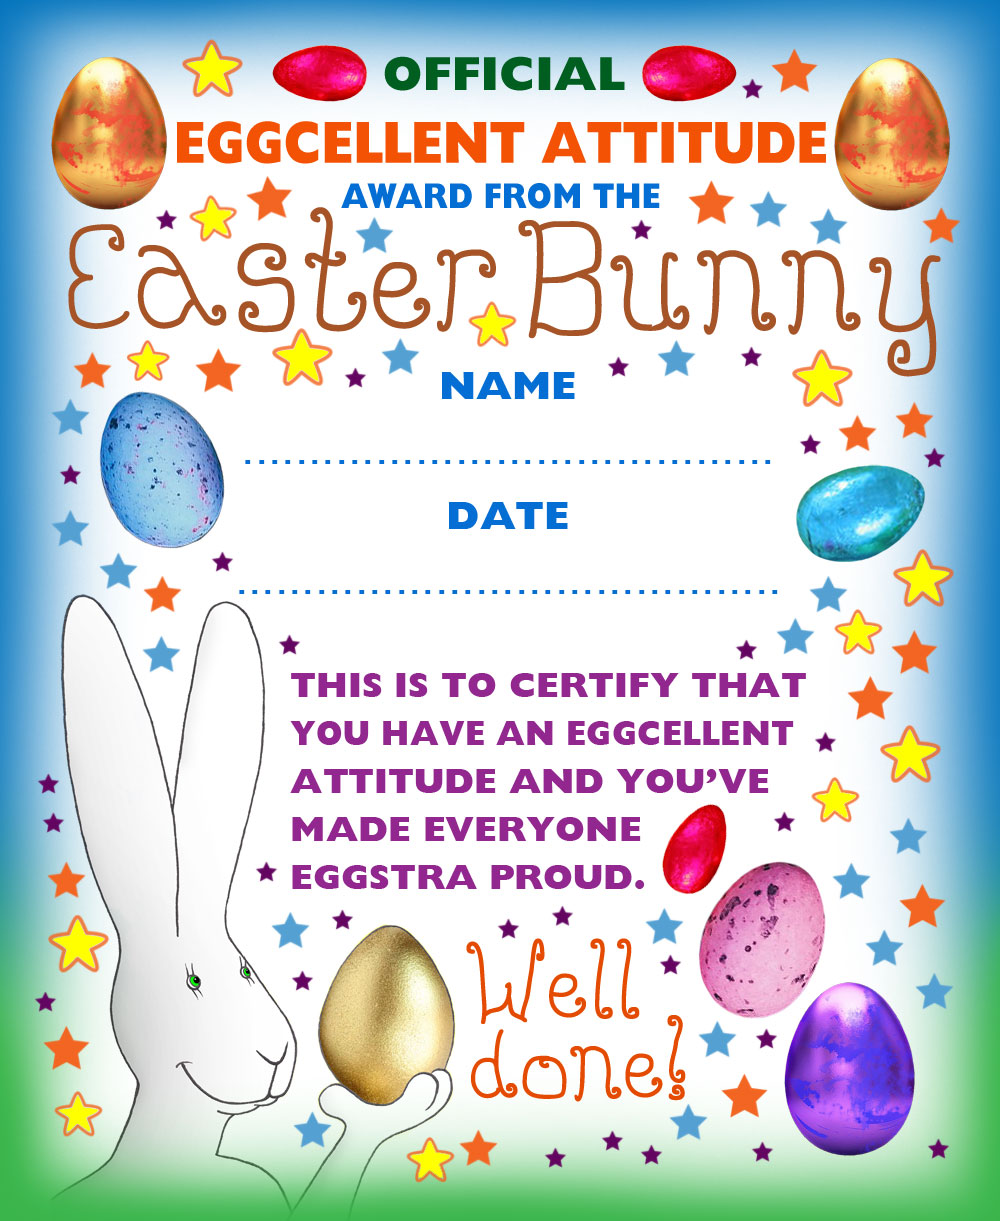 Easter kids award certificate for an eggcellent attitude.